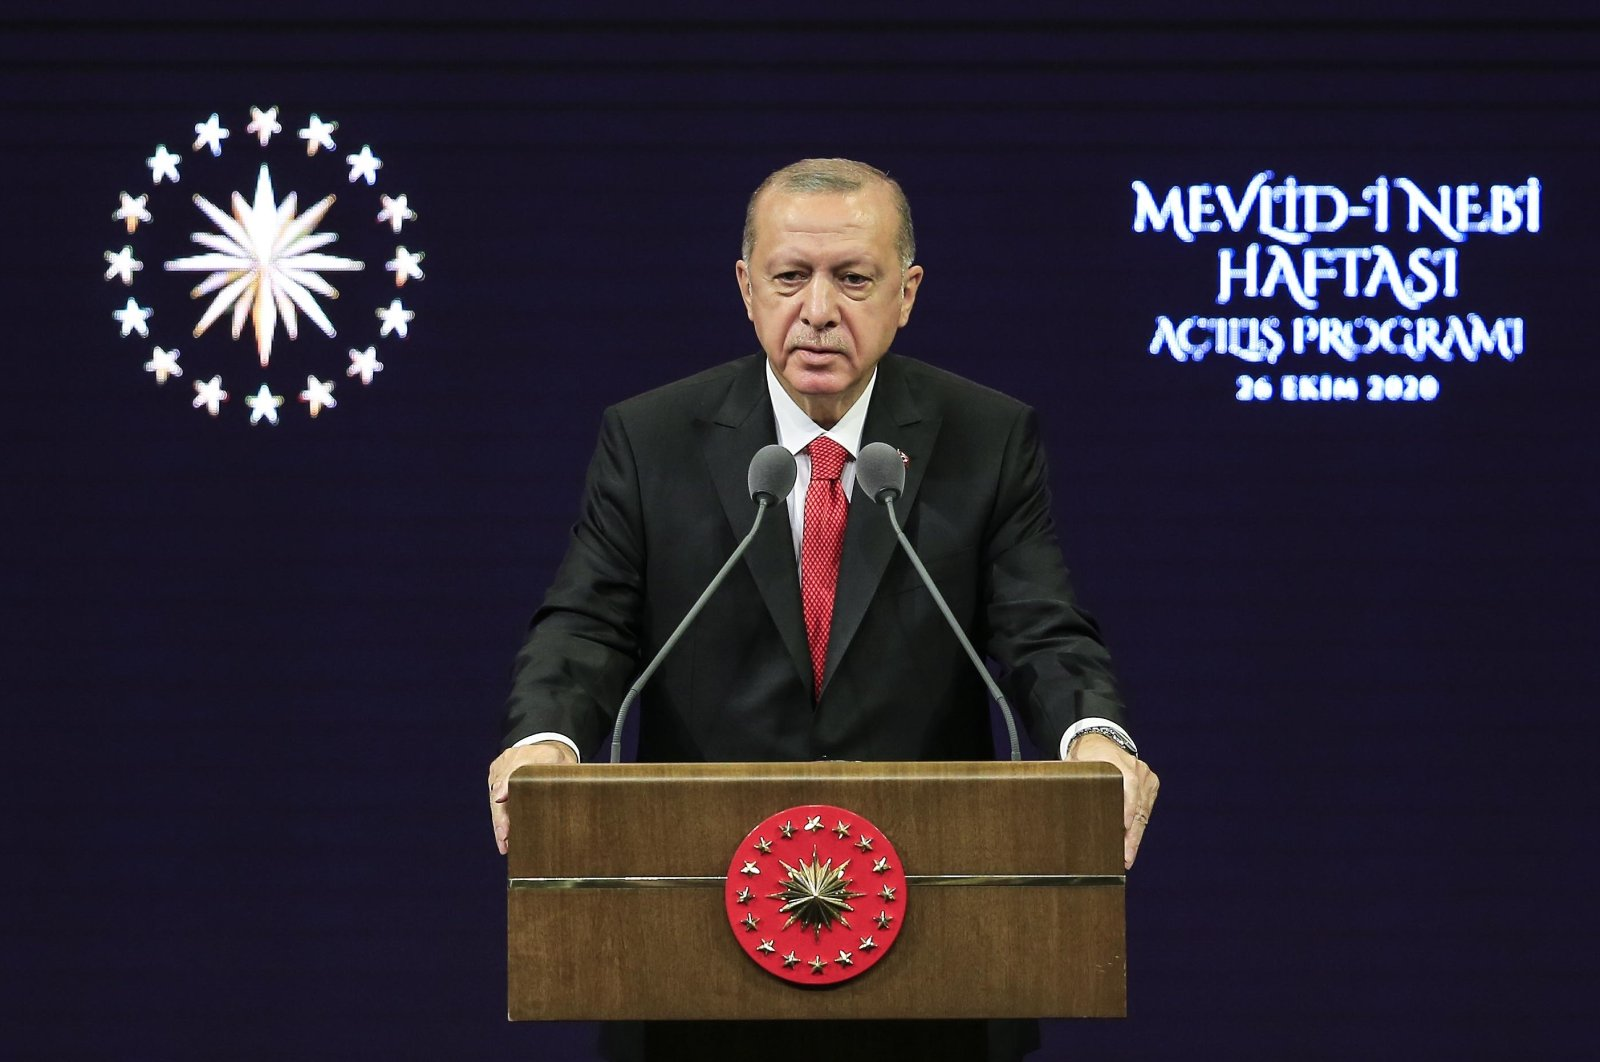 President Recep Tayyip Erdoğan speaks at an event organized for the Mawlid an-Nabi (the birth of the Prophet Muhammad) in the capital Ankara, Oct. 26, 2020. (AA)